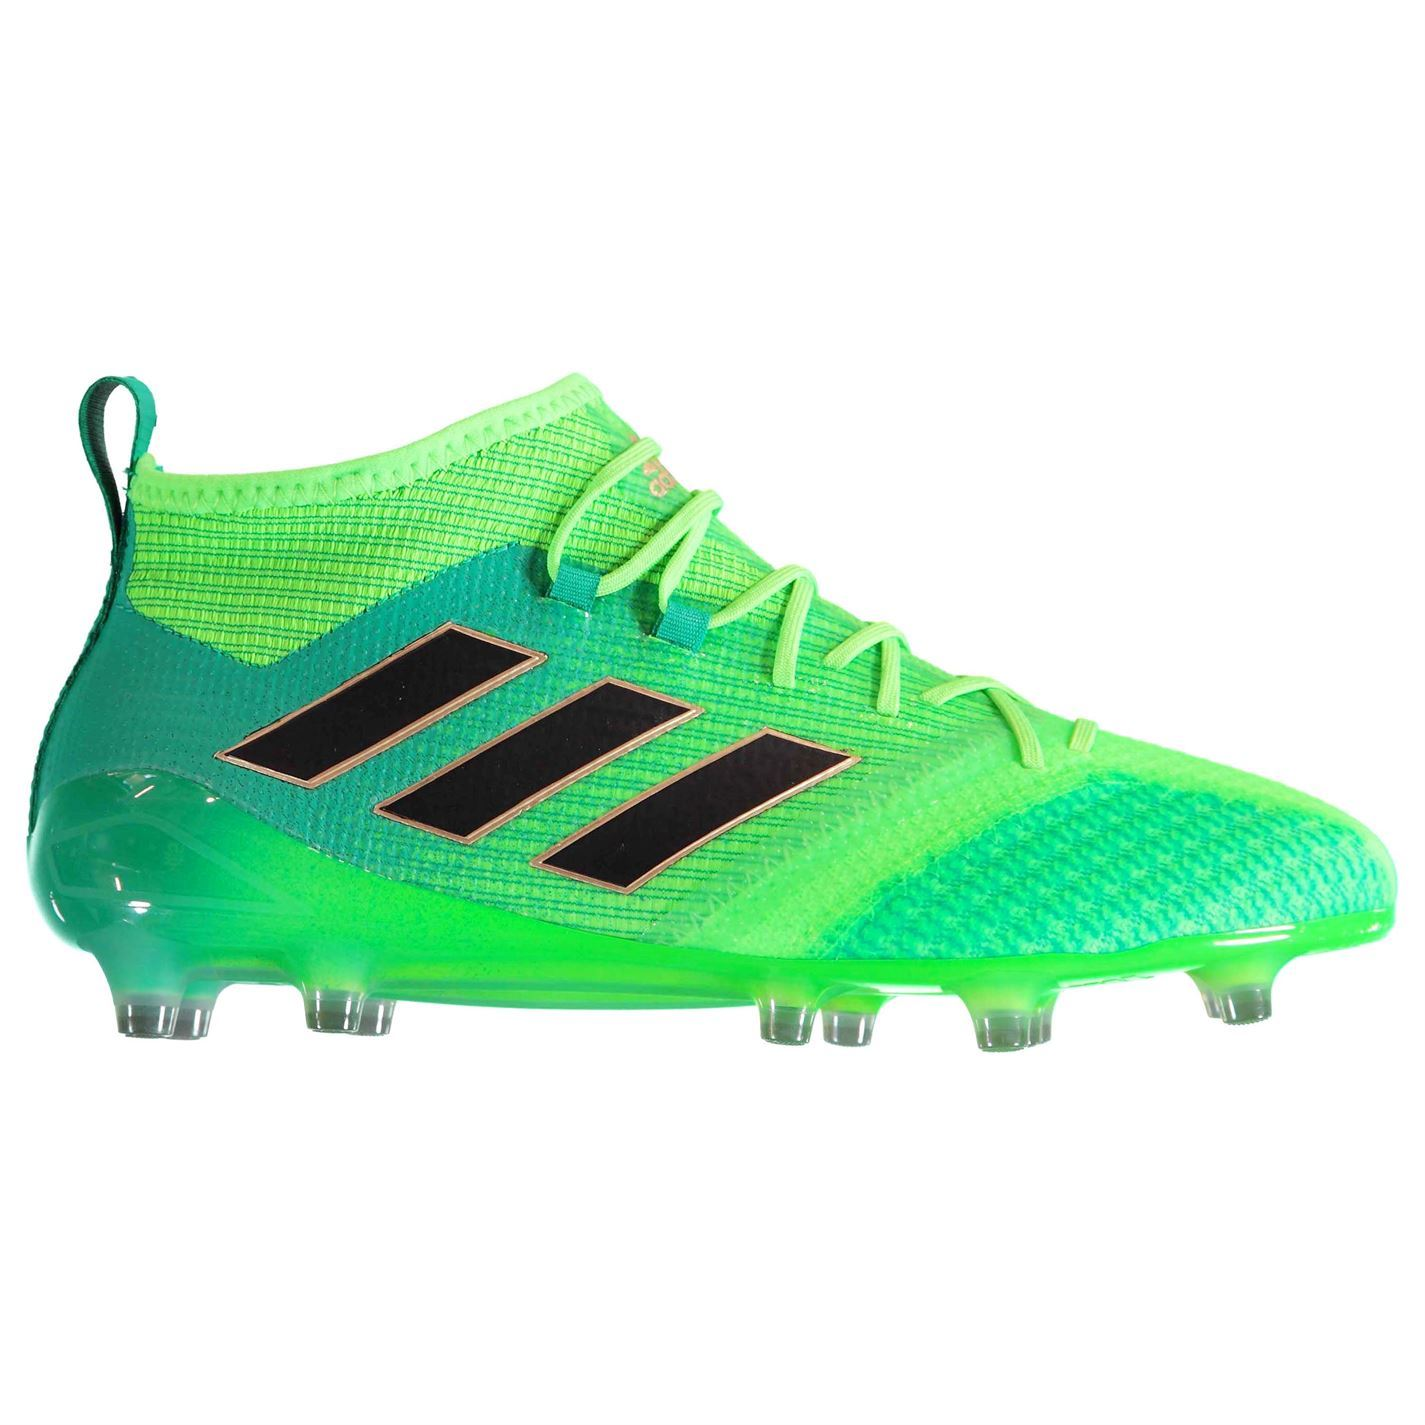 7e4c1343841e adidas Mens Ace 17.1 Primeknit FG Football Boots Firm Ground Studs Knit